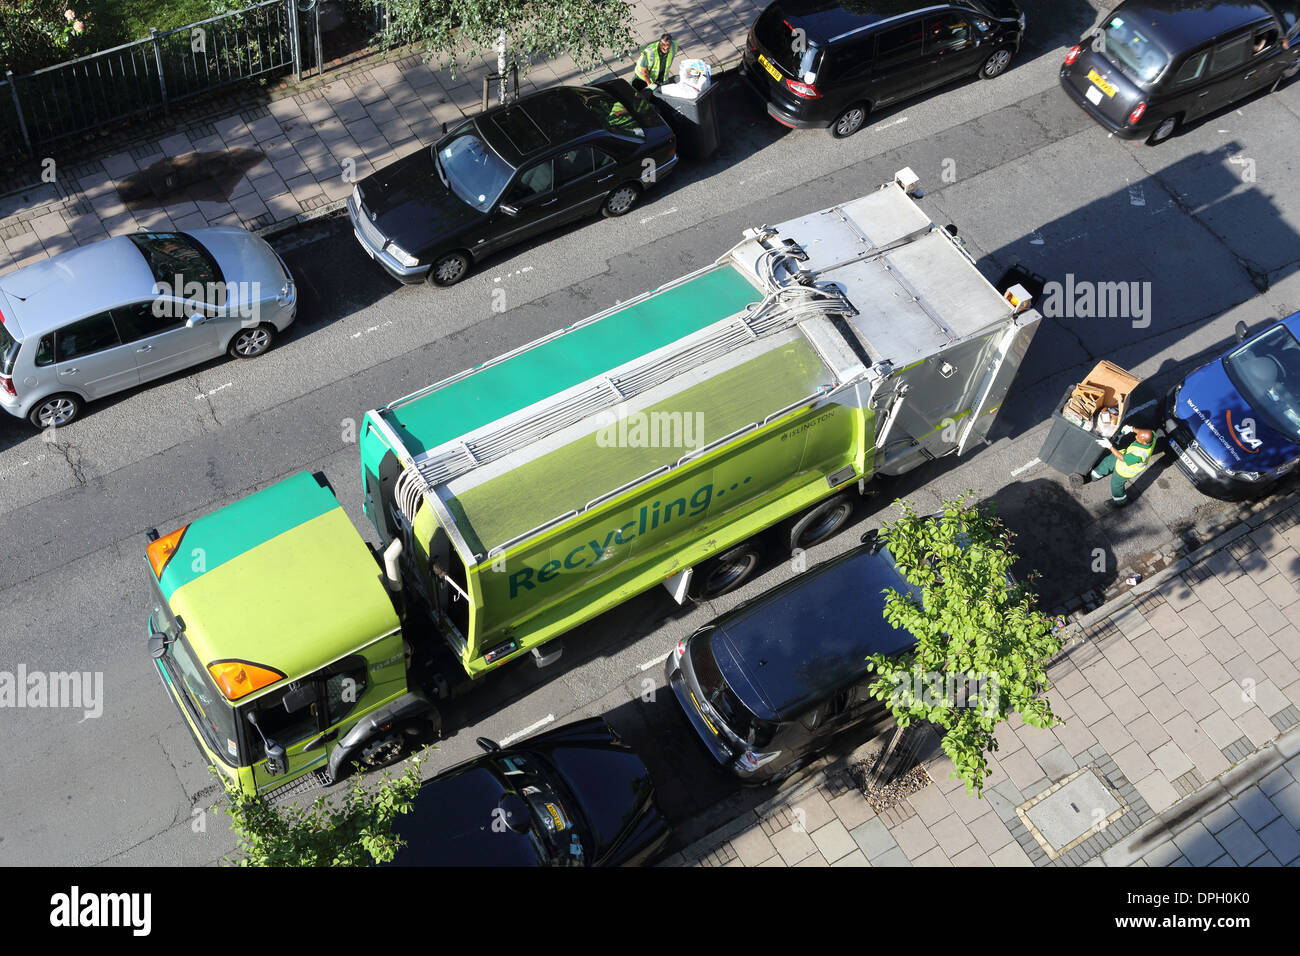 A recycling lorry making it's weekly collections in Islington, north London, England, UK - Stock Image